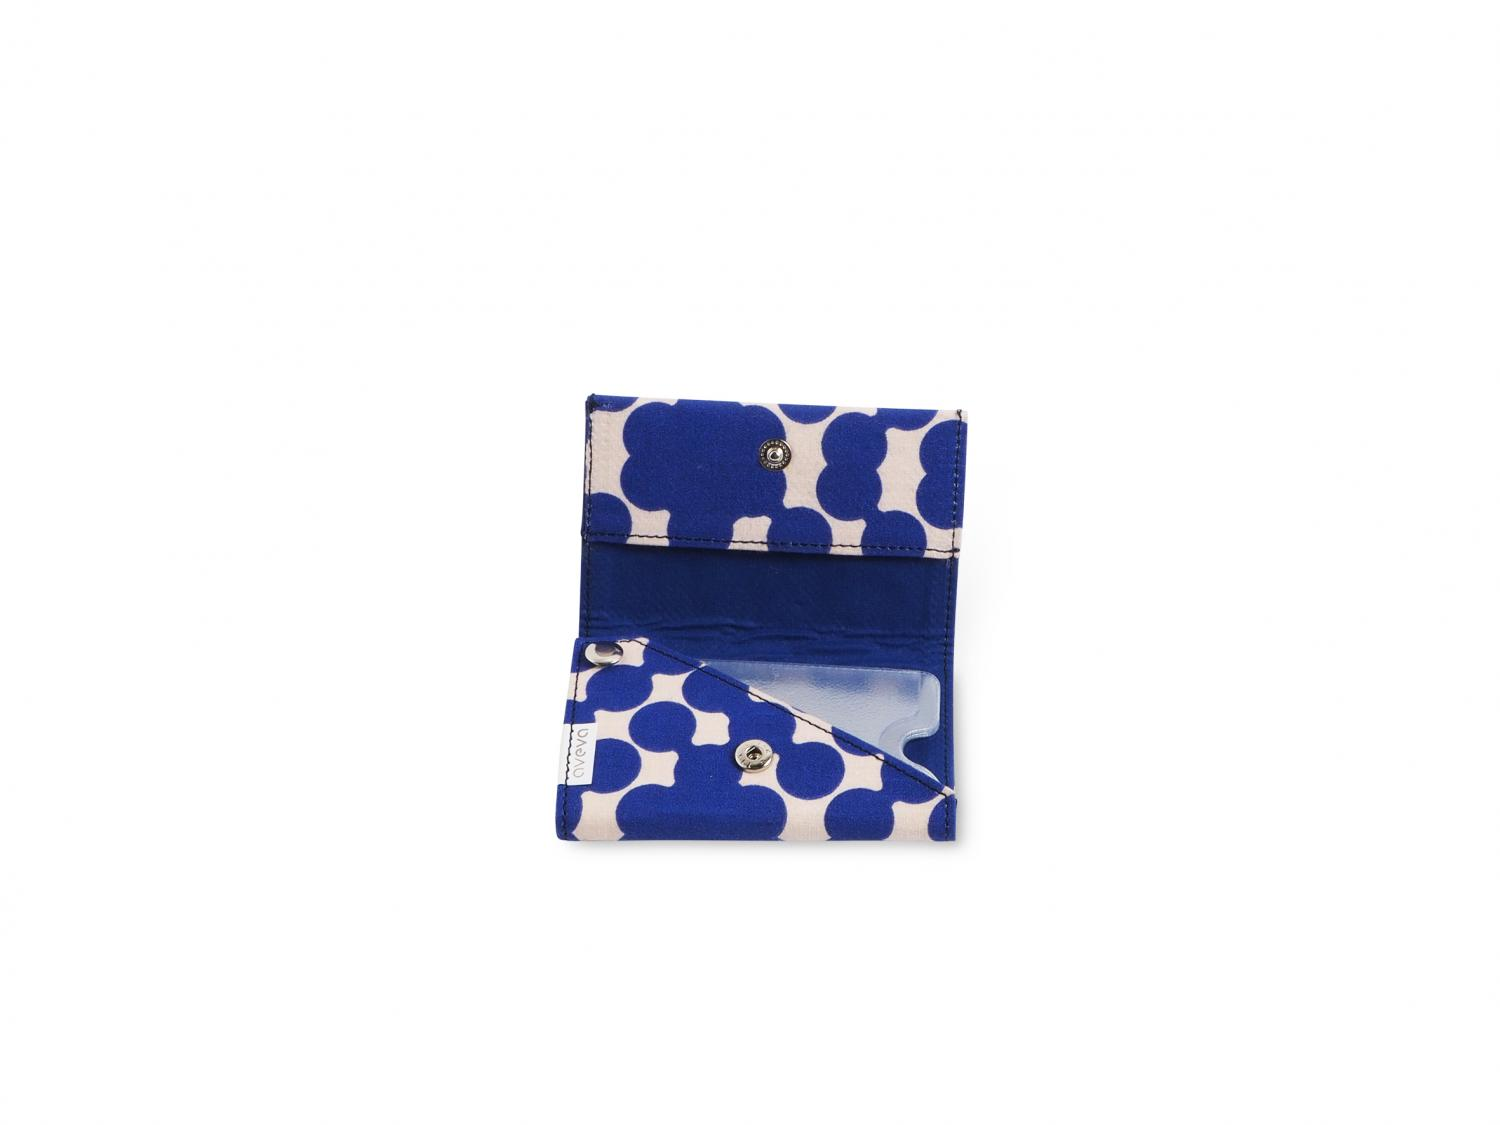 Handmade patterned wallet in recycled cotton with blue dots - Open.